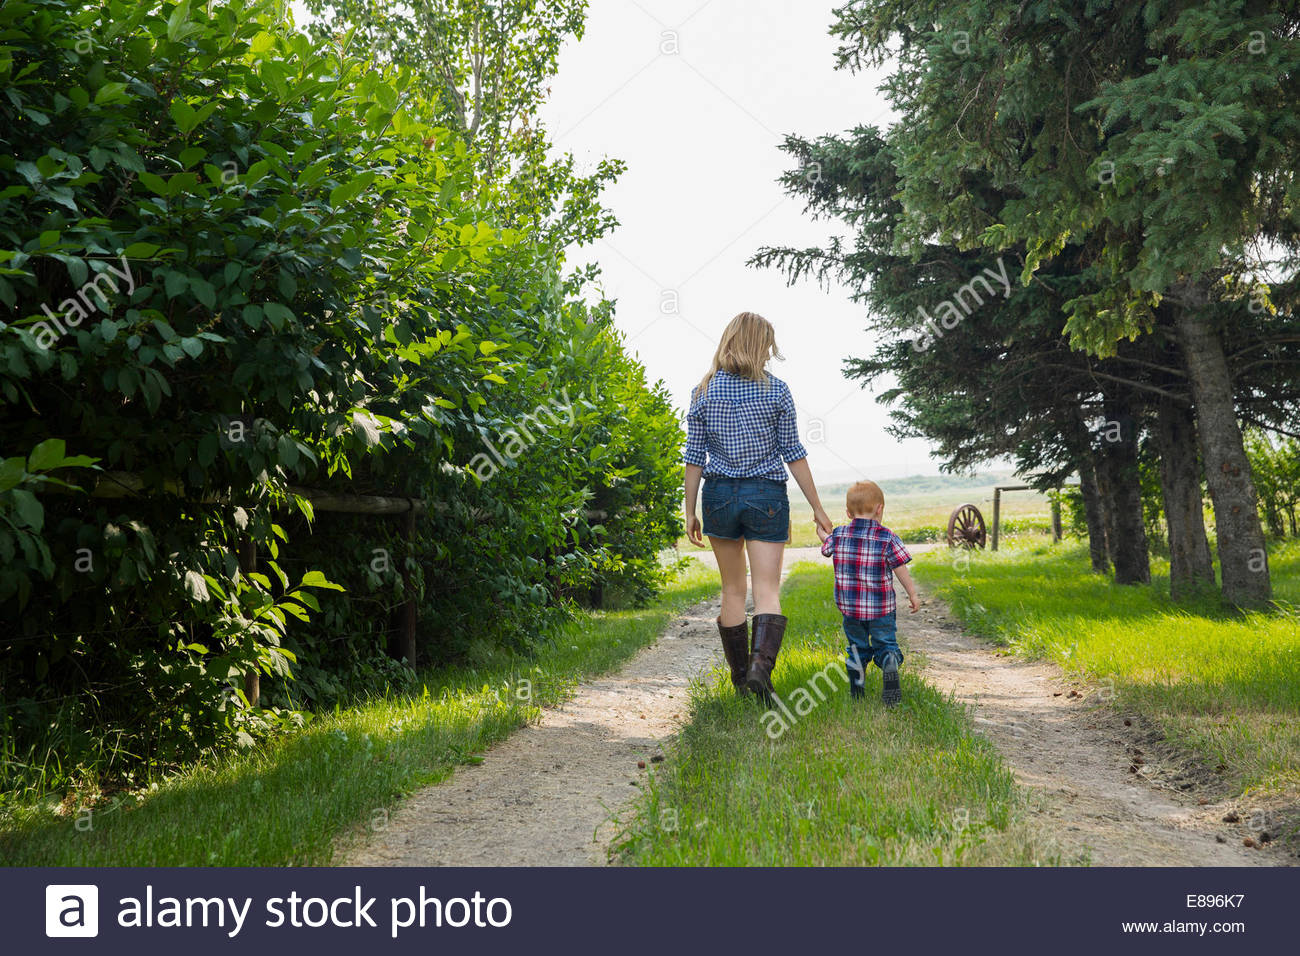 Mother and son walking on rural road - Stock Image